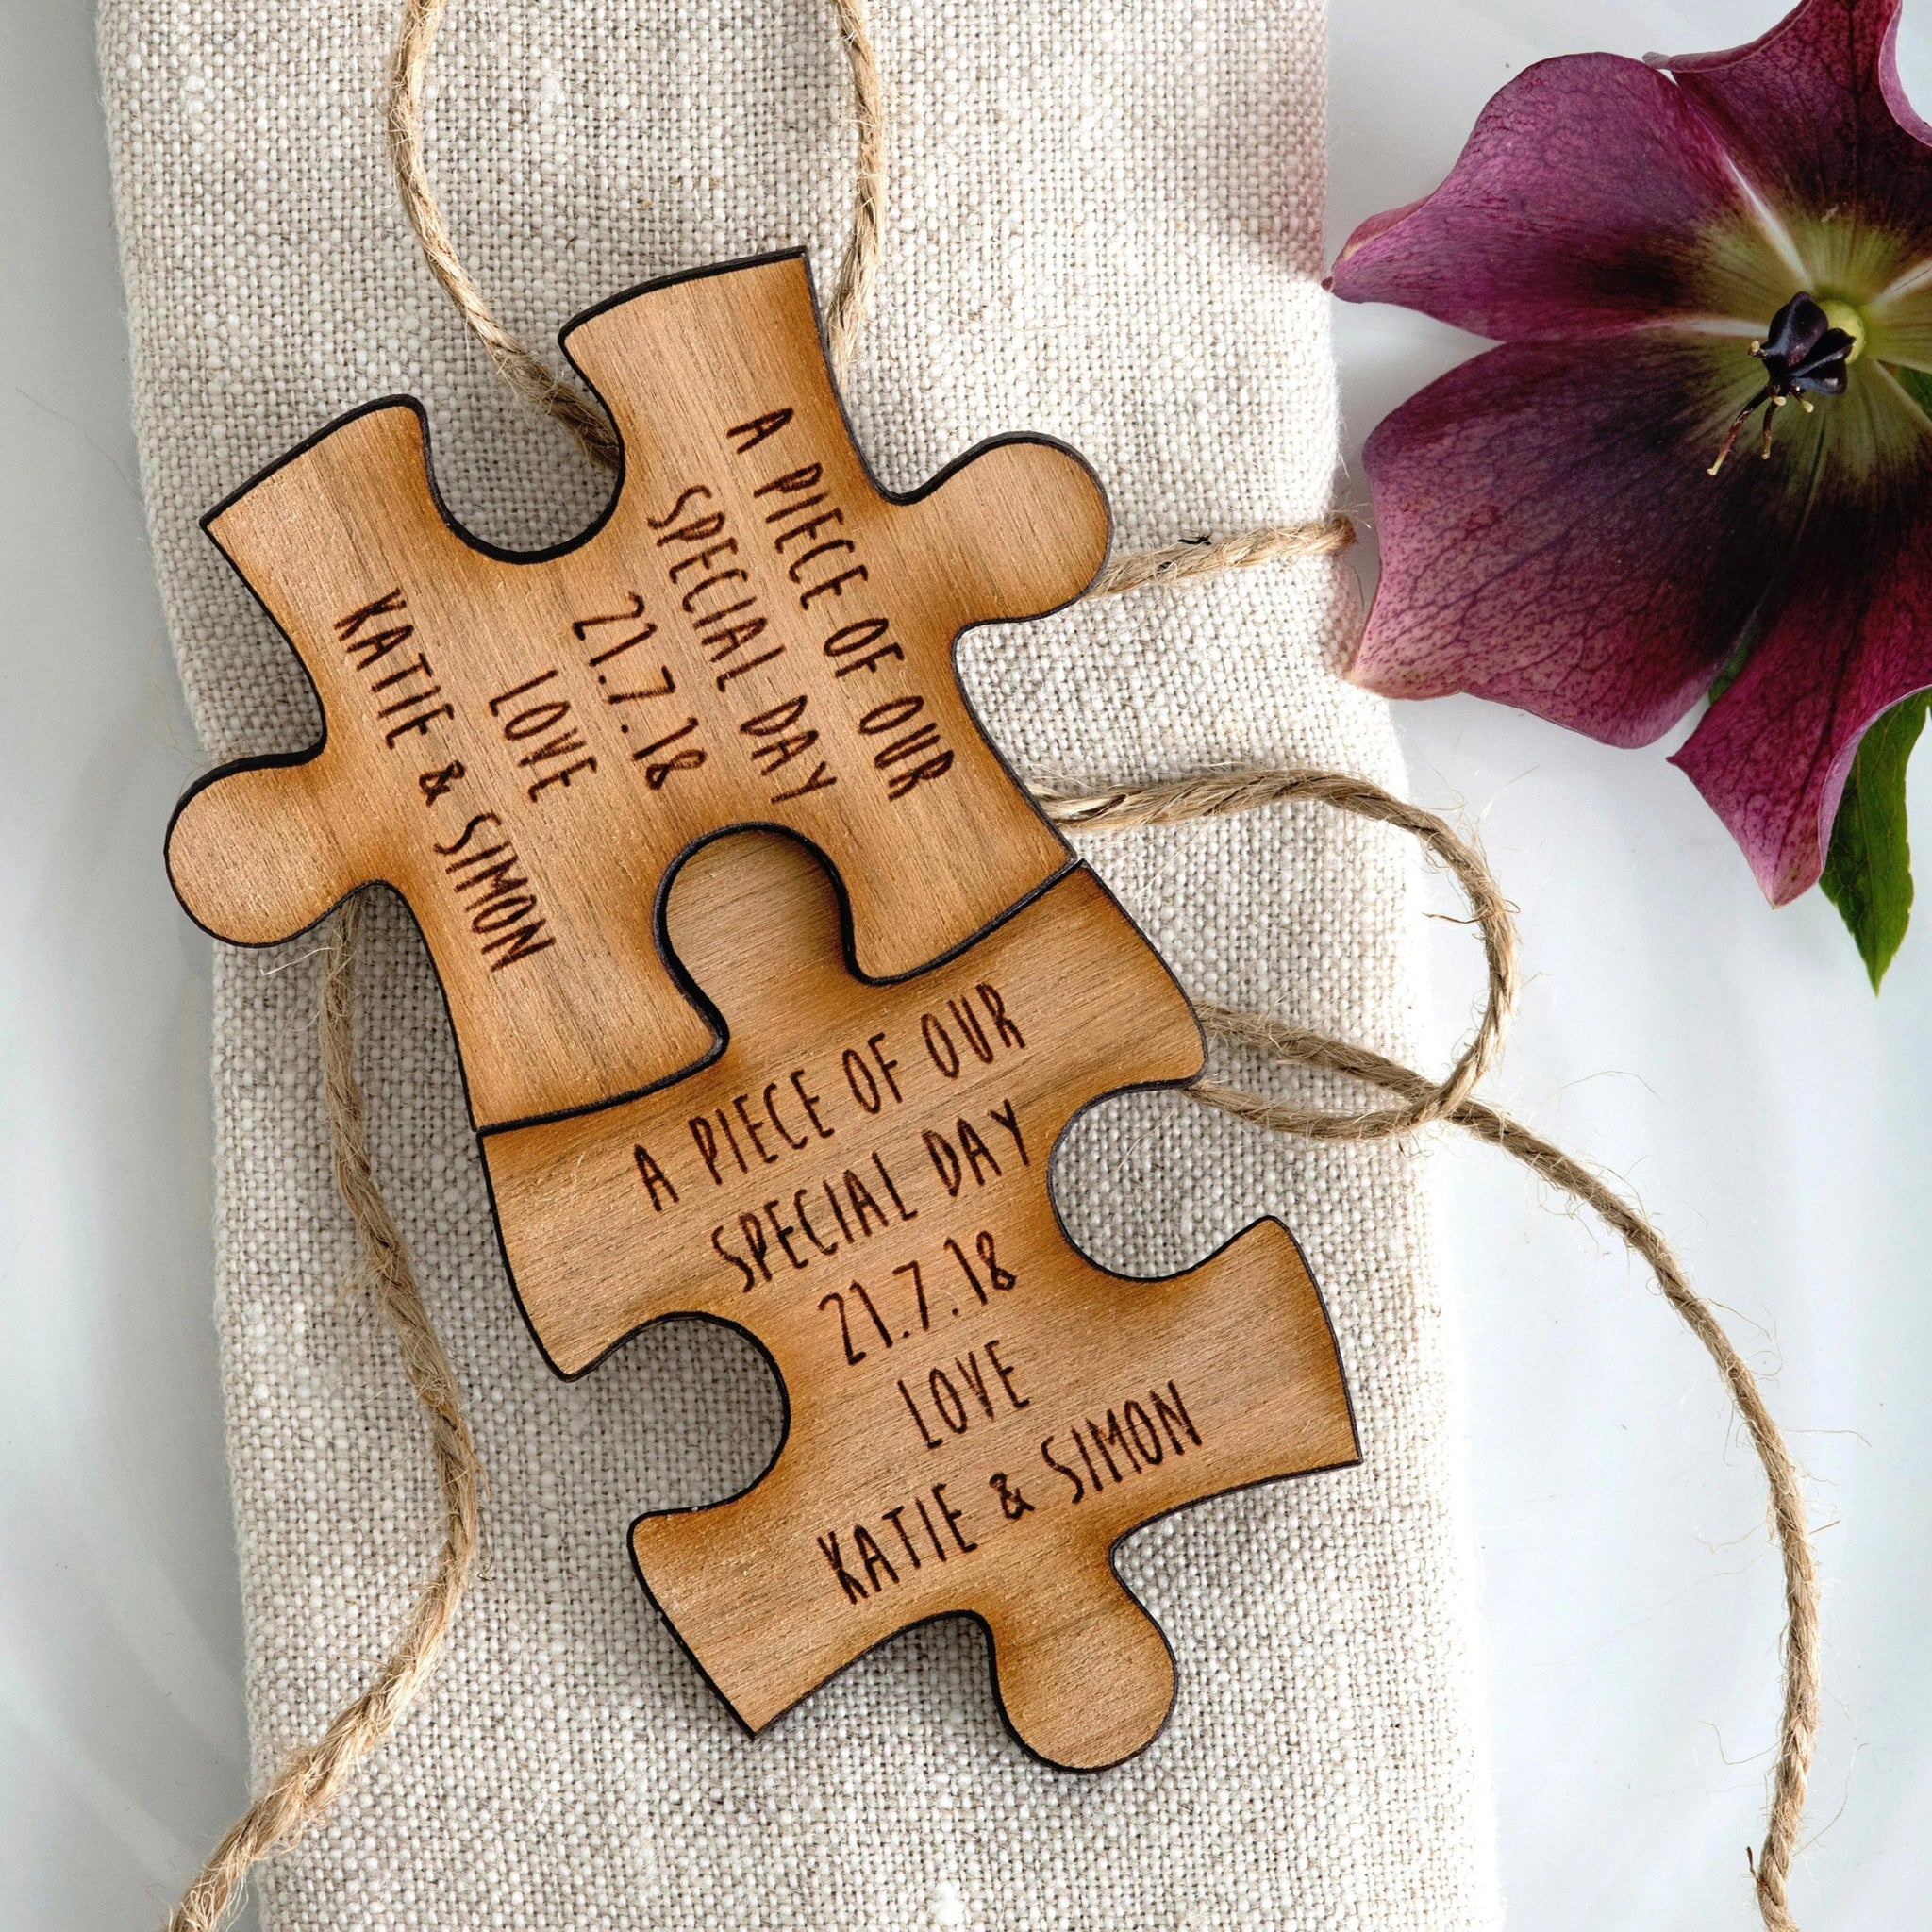 Wooden Jigsaw table favours